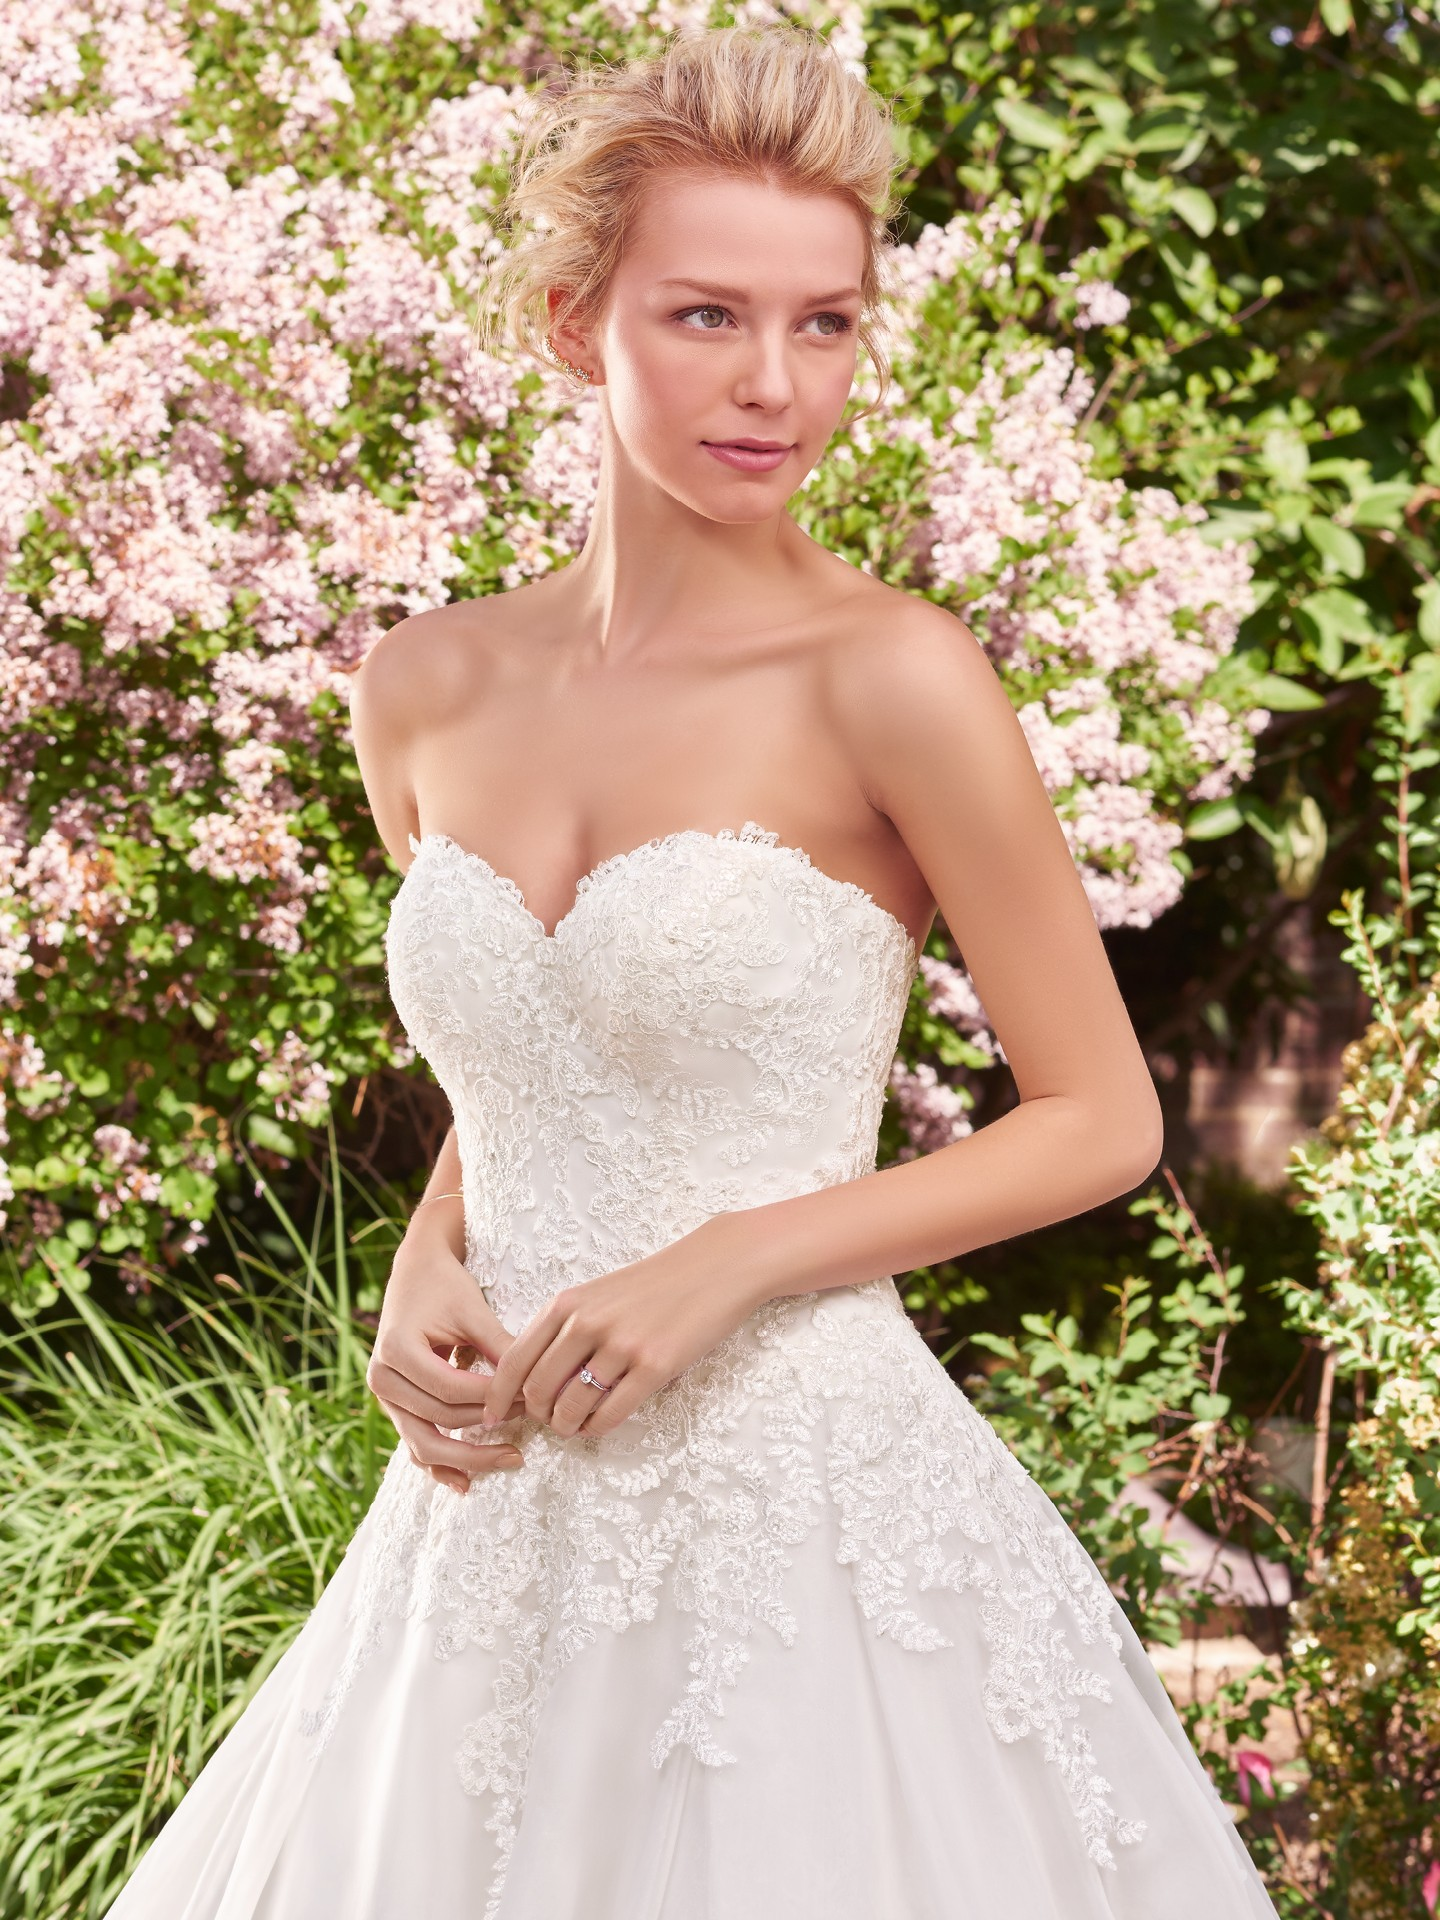 Off-the-shoulder lace jacket with elbow-length sleeves sold separately. Darlene ballgown wedding dress with separate jacket. - The Latest Wedding Dress Trends for Engagement Season 2018